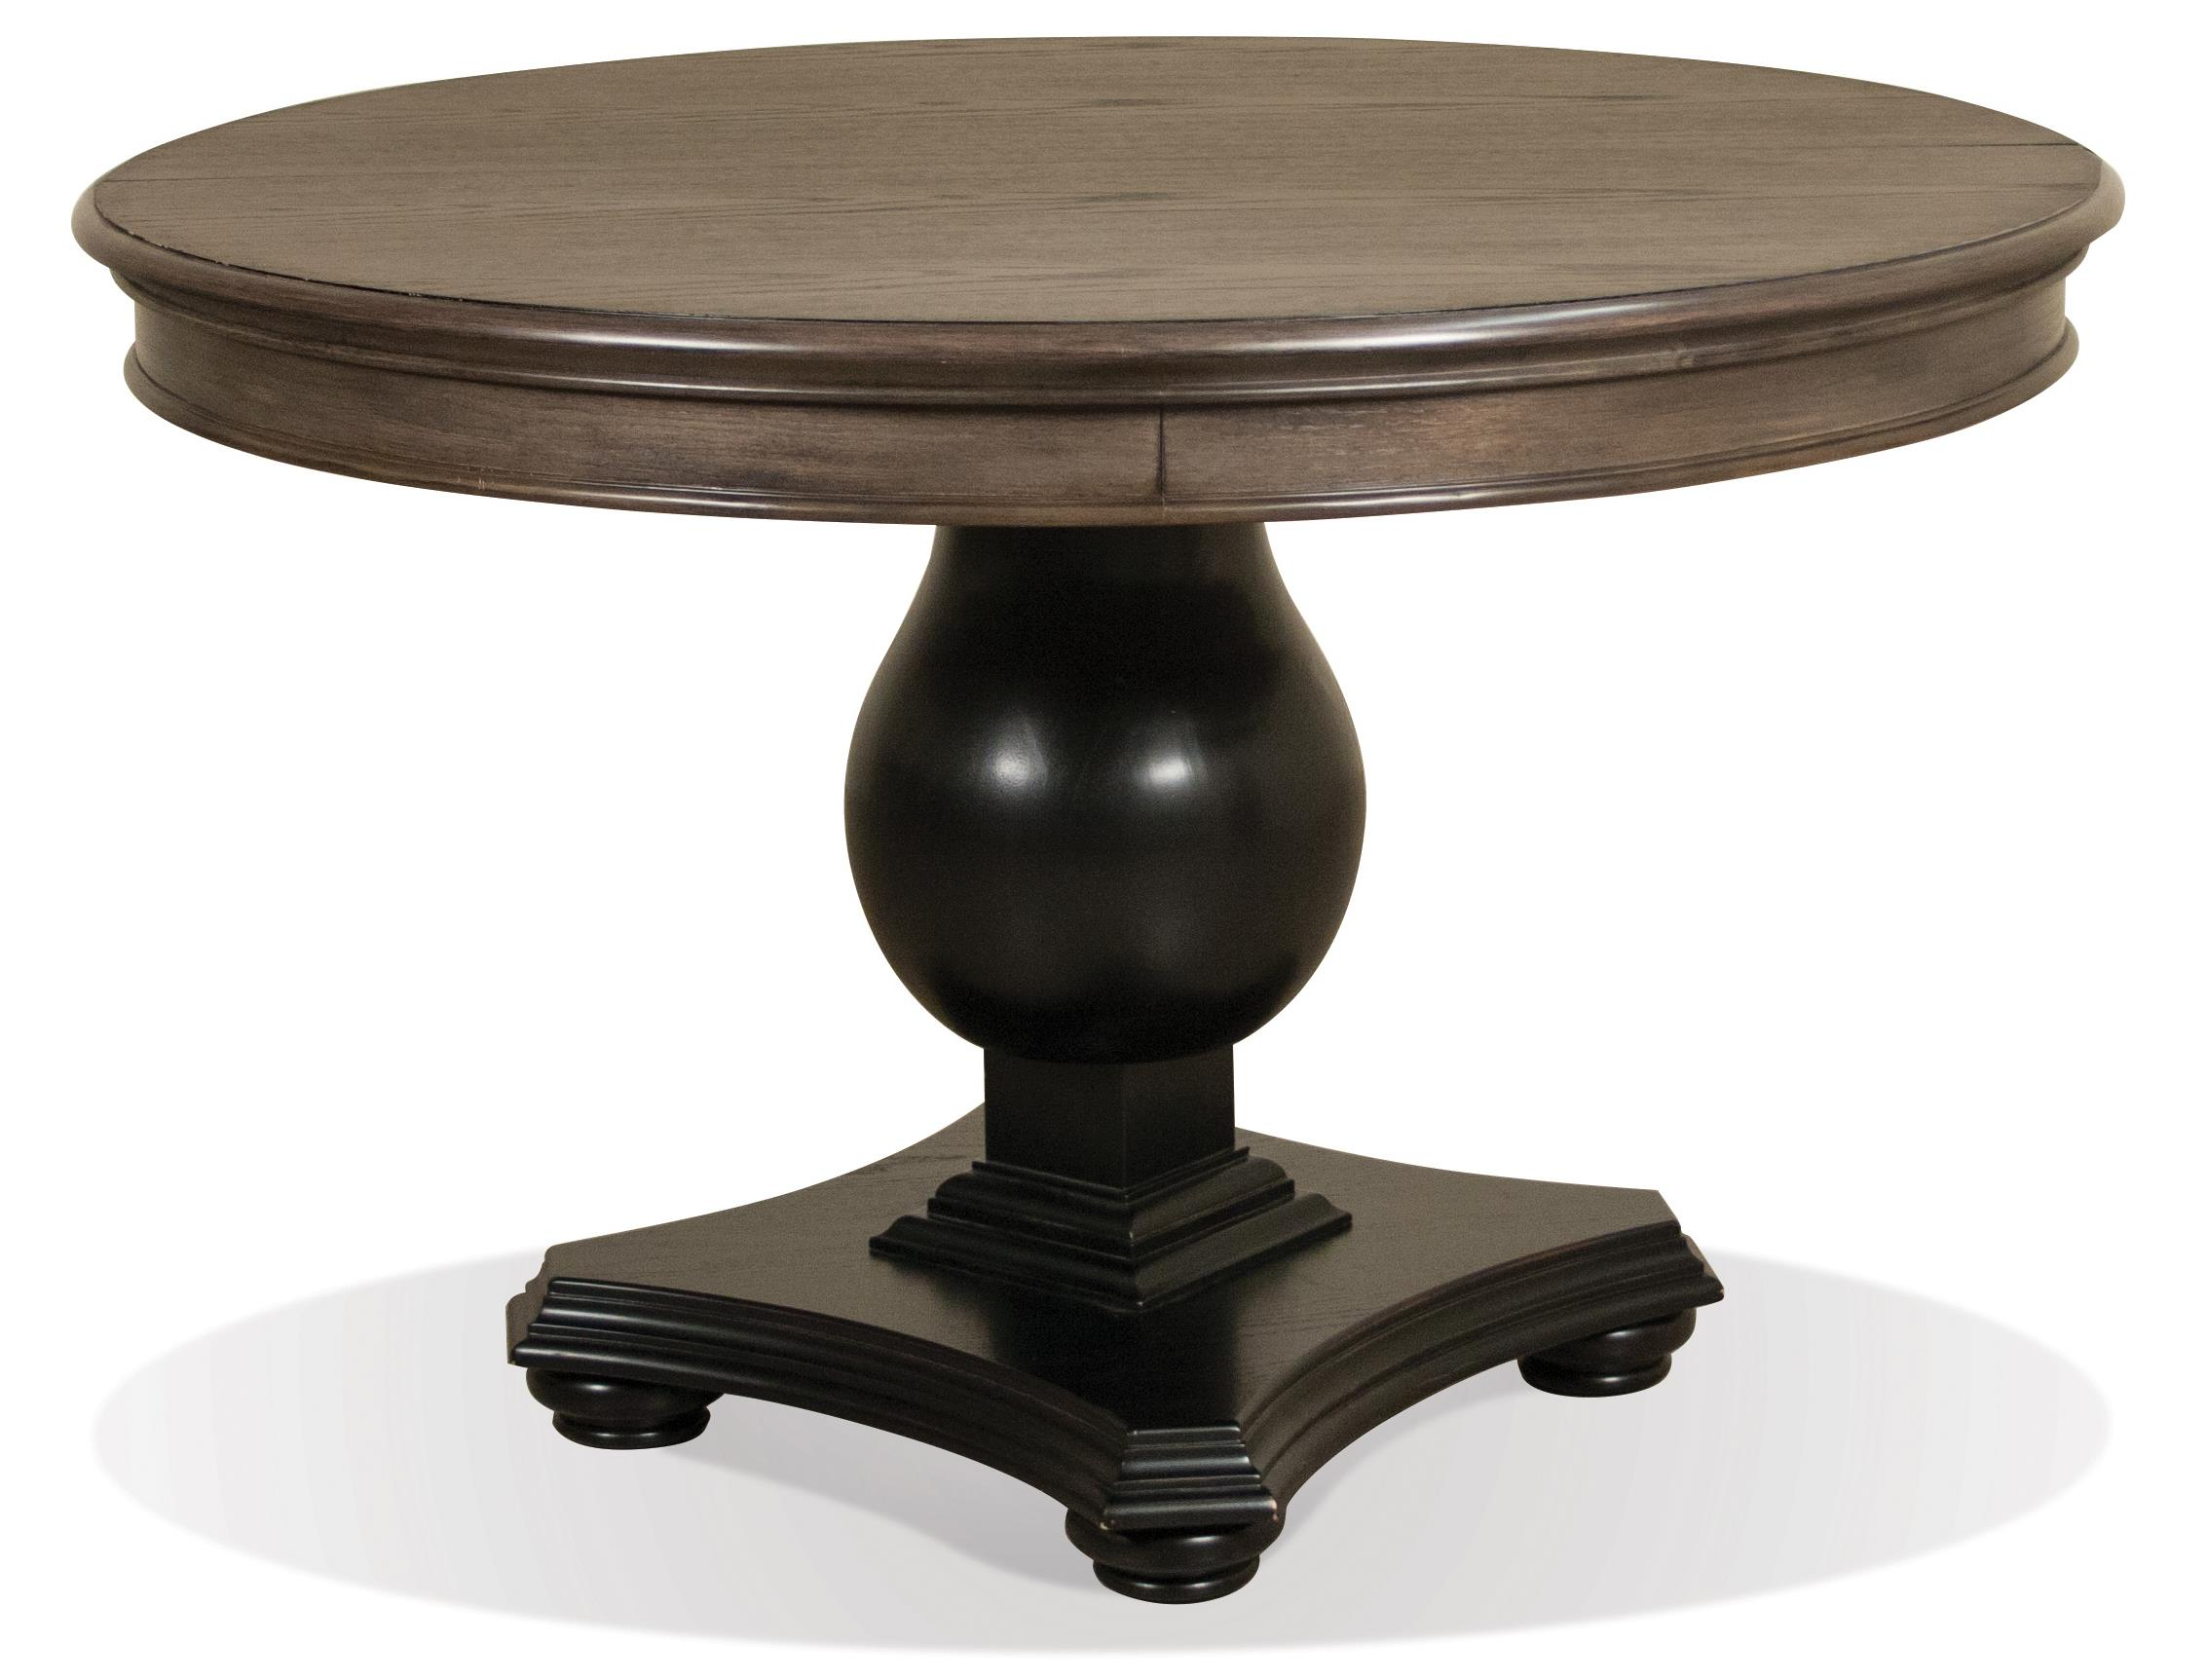 Round extension dining table w pedestal base by riverside for Round extension dining table